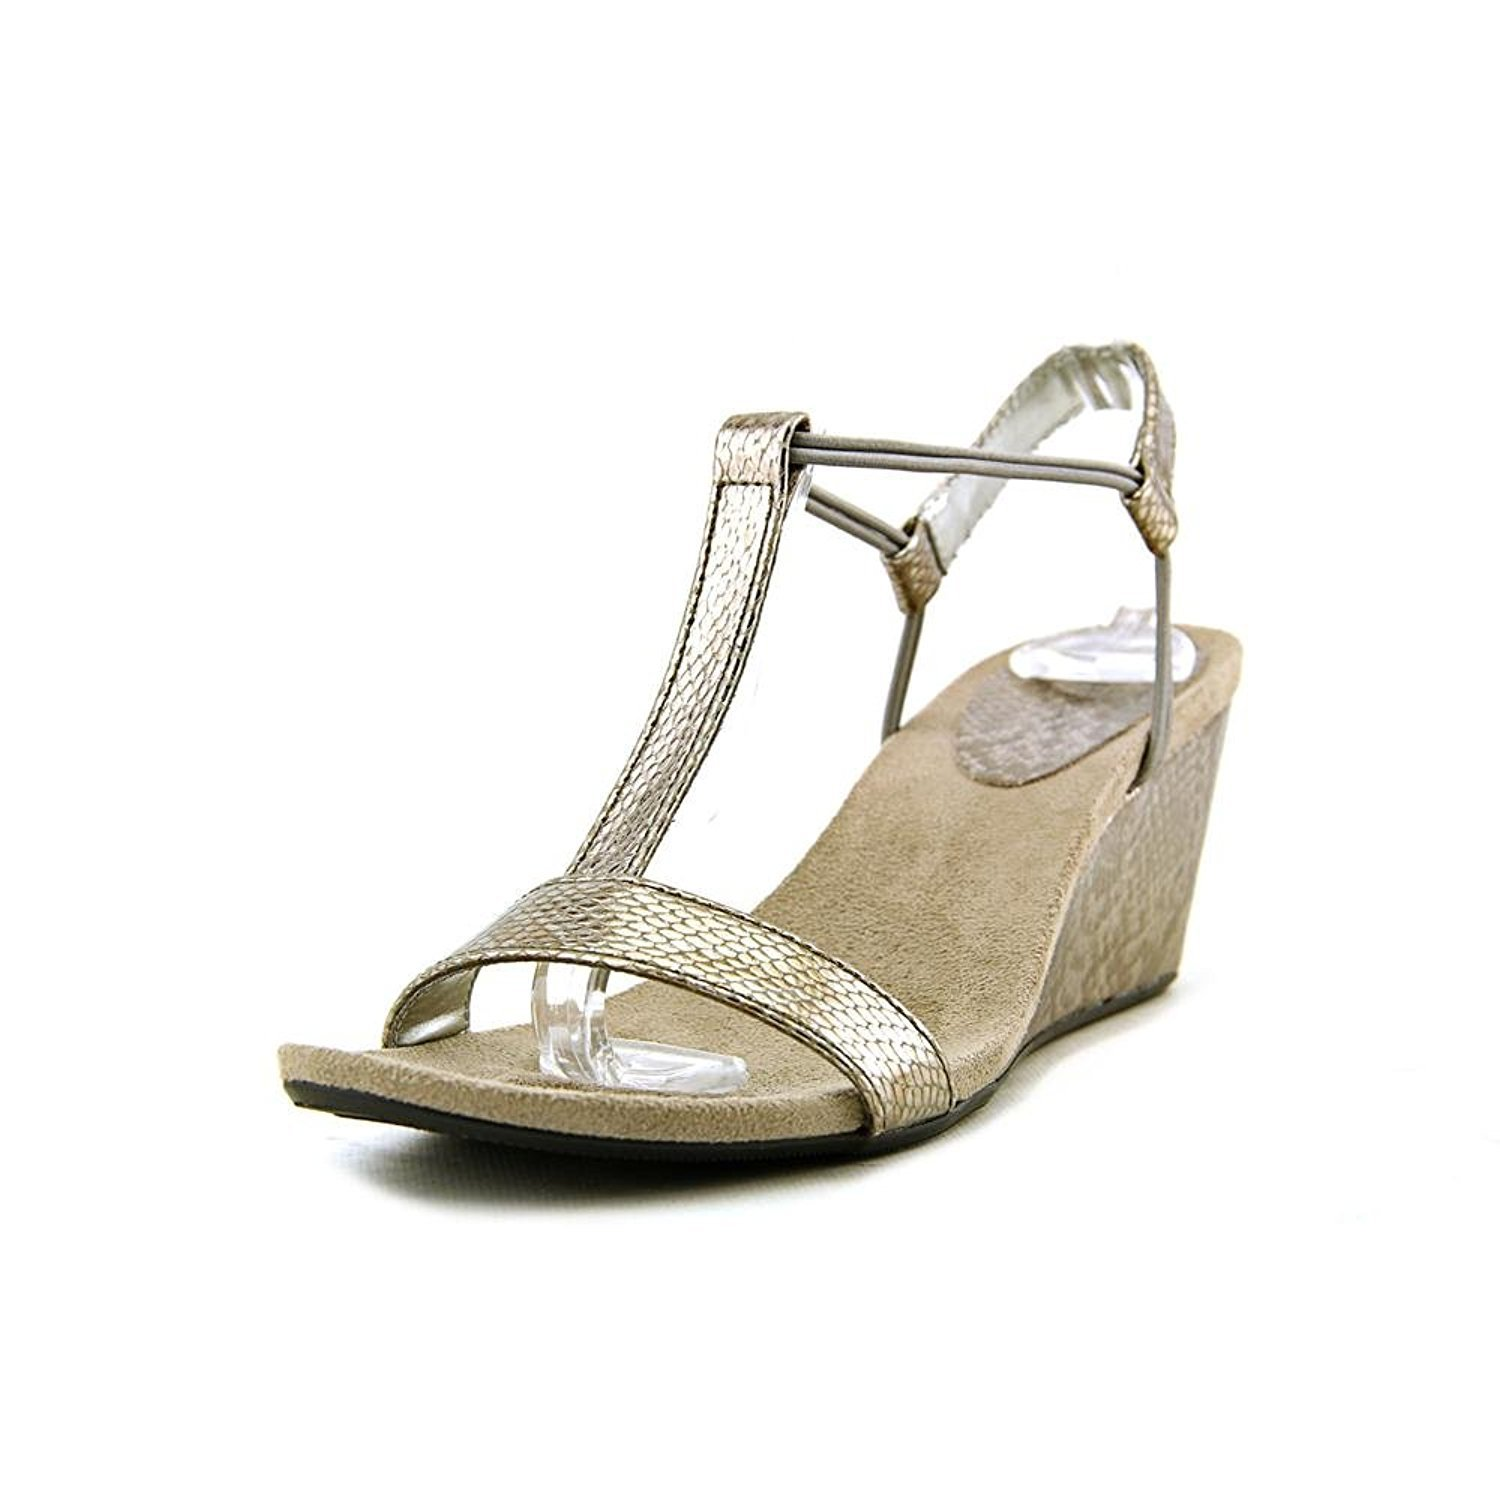 Style & Co. Womens Mulan Open Toe Casual Platform Sandals, New Pewter, Size 7.5